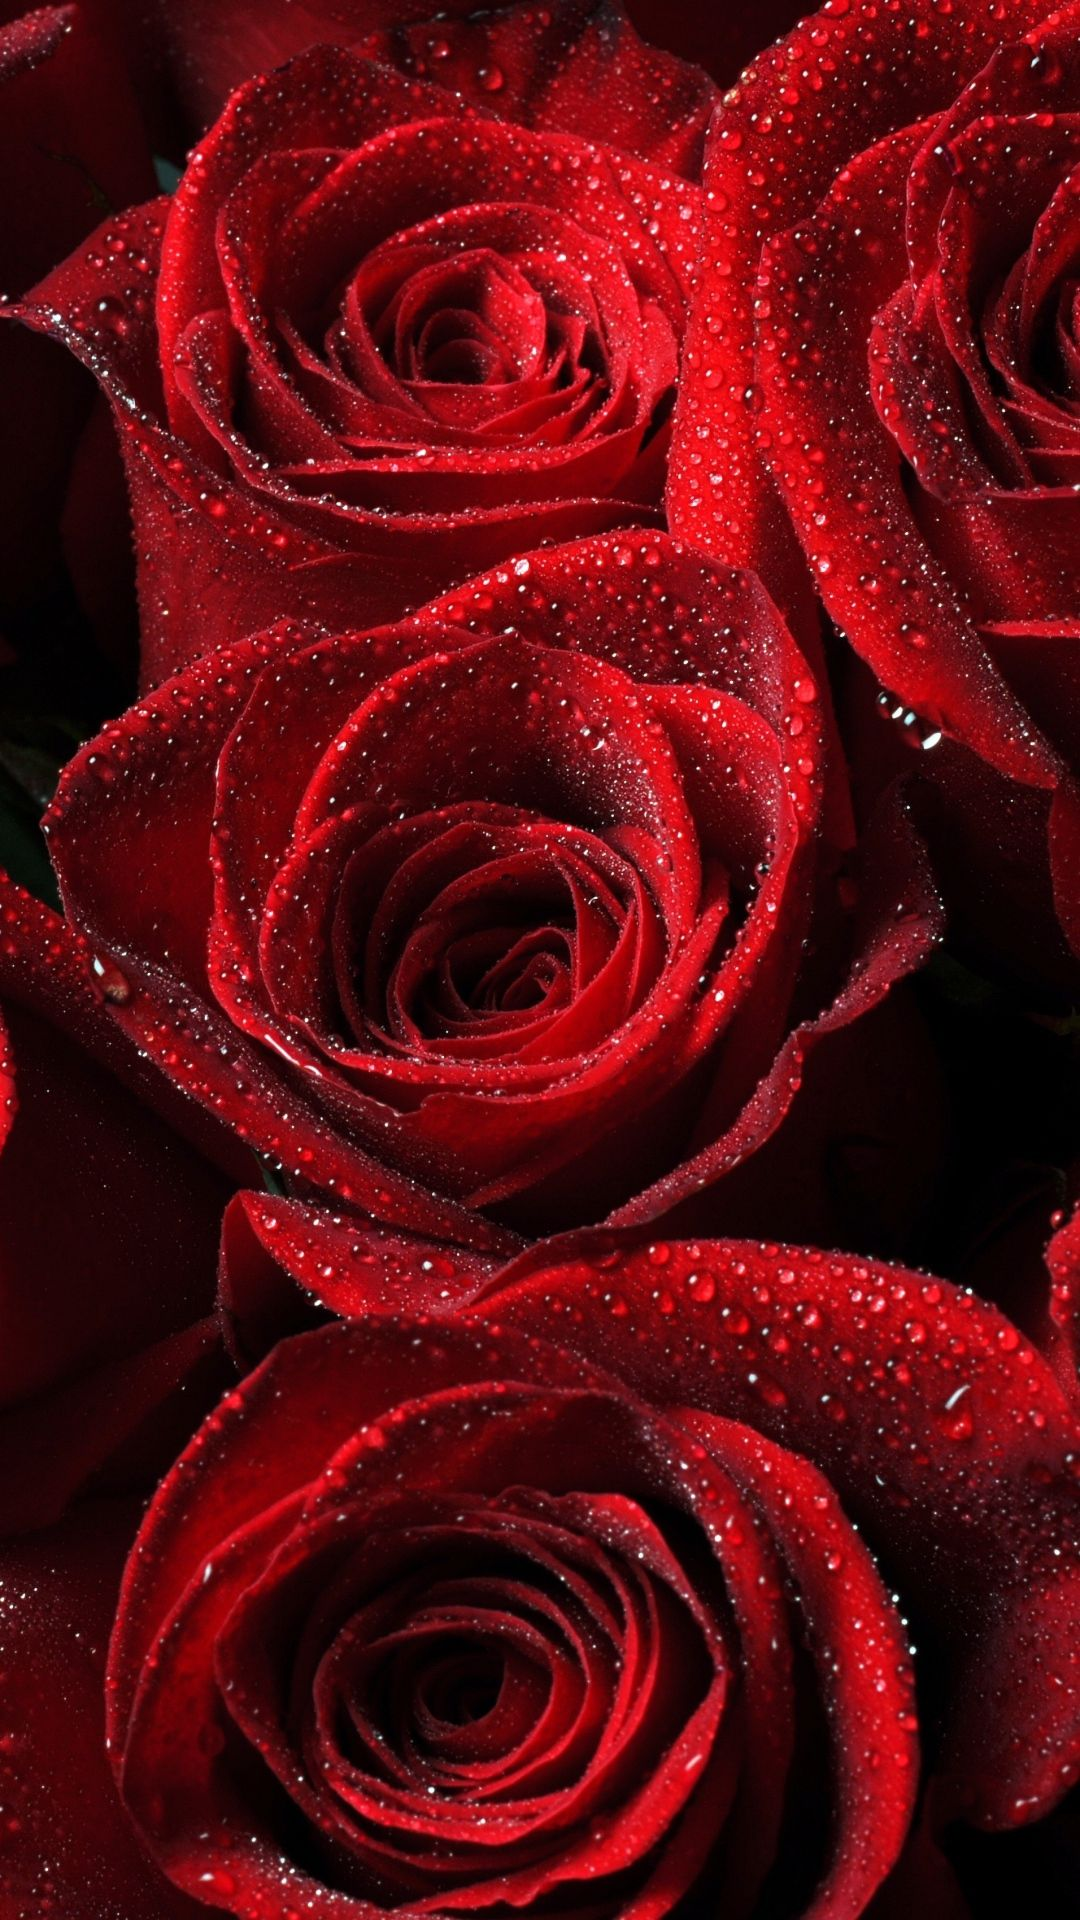 Roses Red Drops Petals Iphone 6 Plus Wallpaper Rose